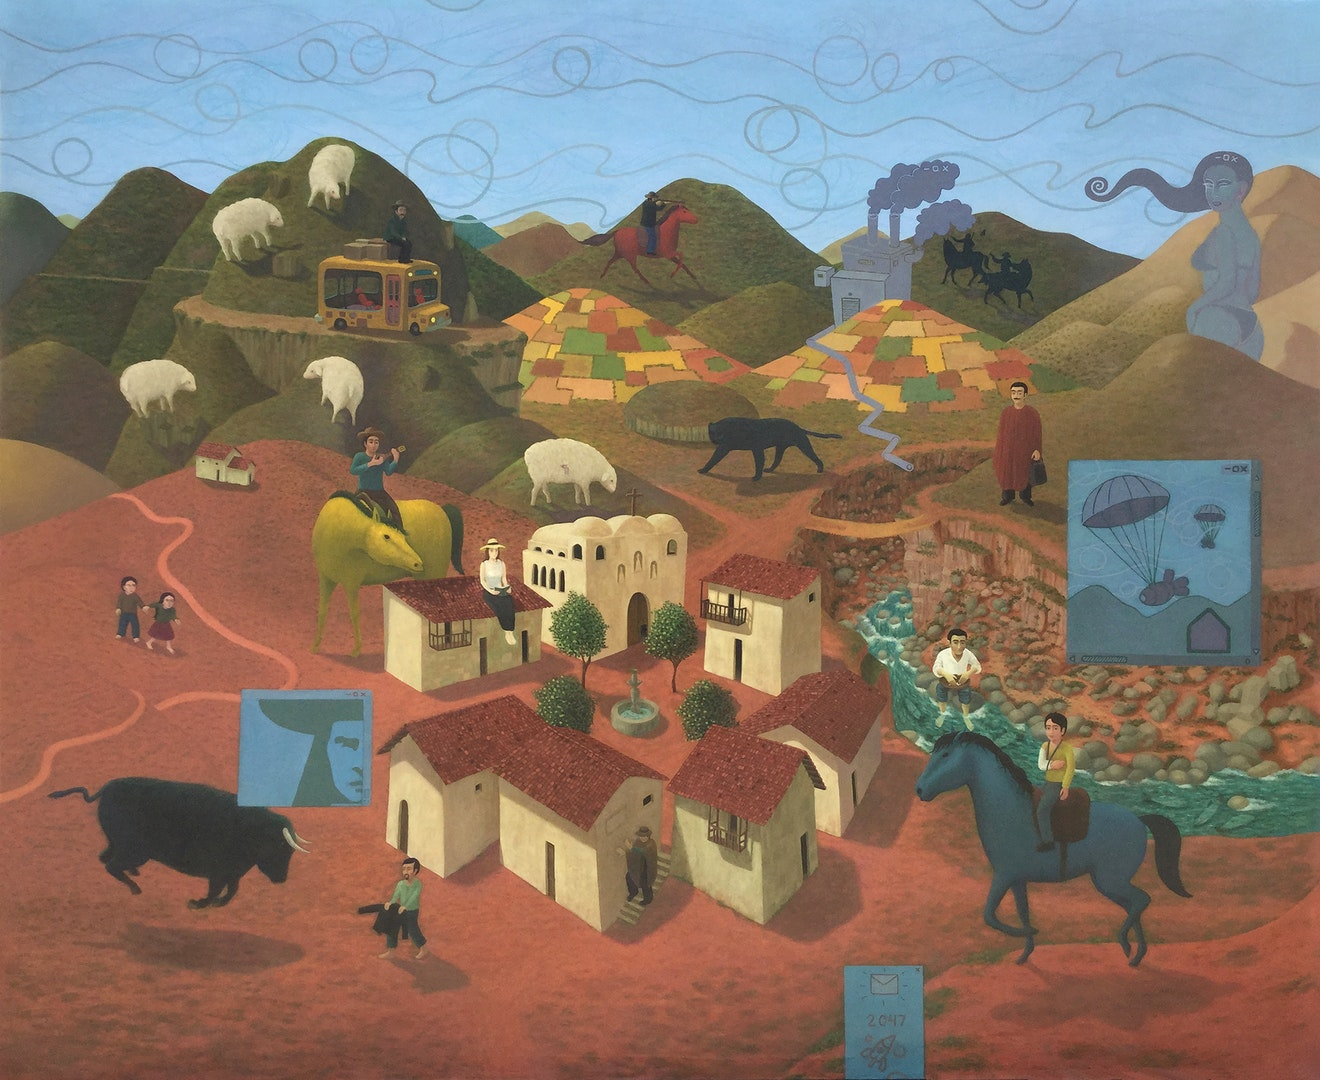 'Santo Tomás (El pueblo)', Julio Gomez, Oil on canvas, 128 x 158 cm